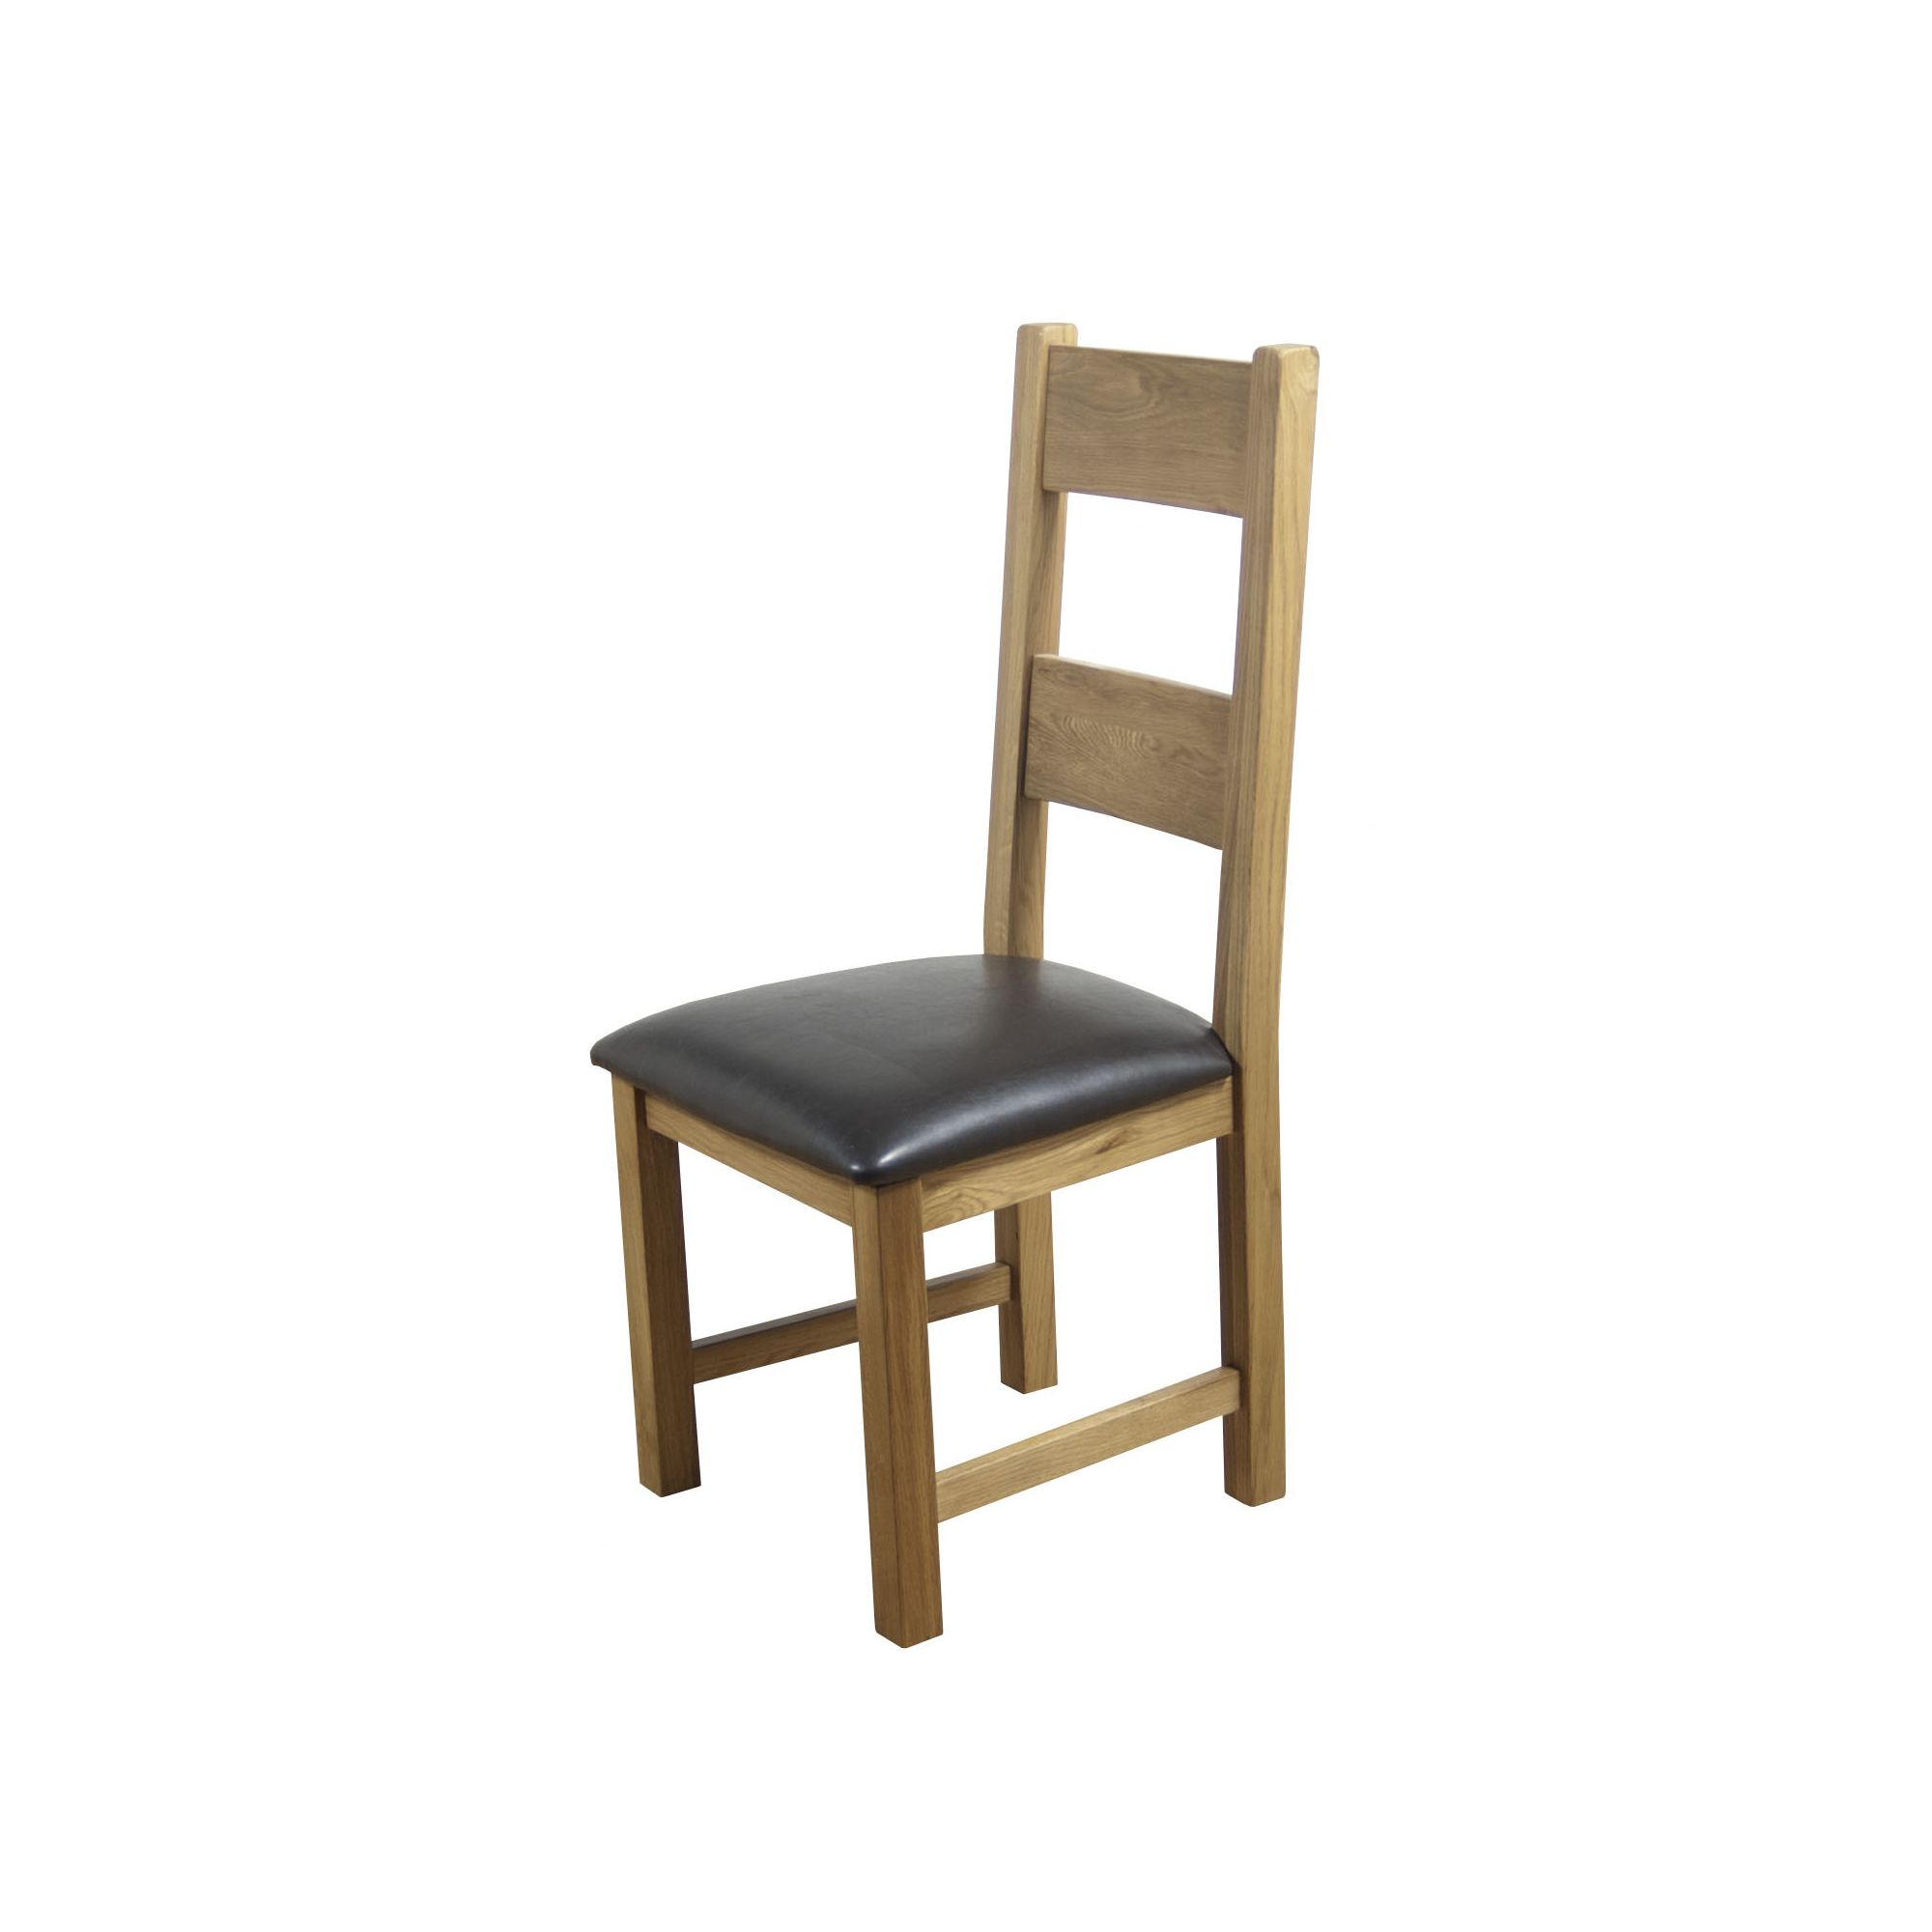 Furniture Link Hampshire Dining Chair (Set of 2) - Padded